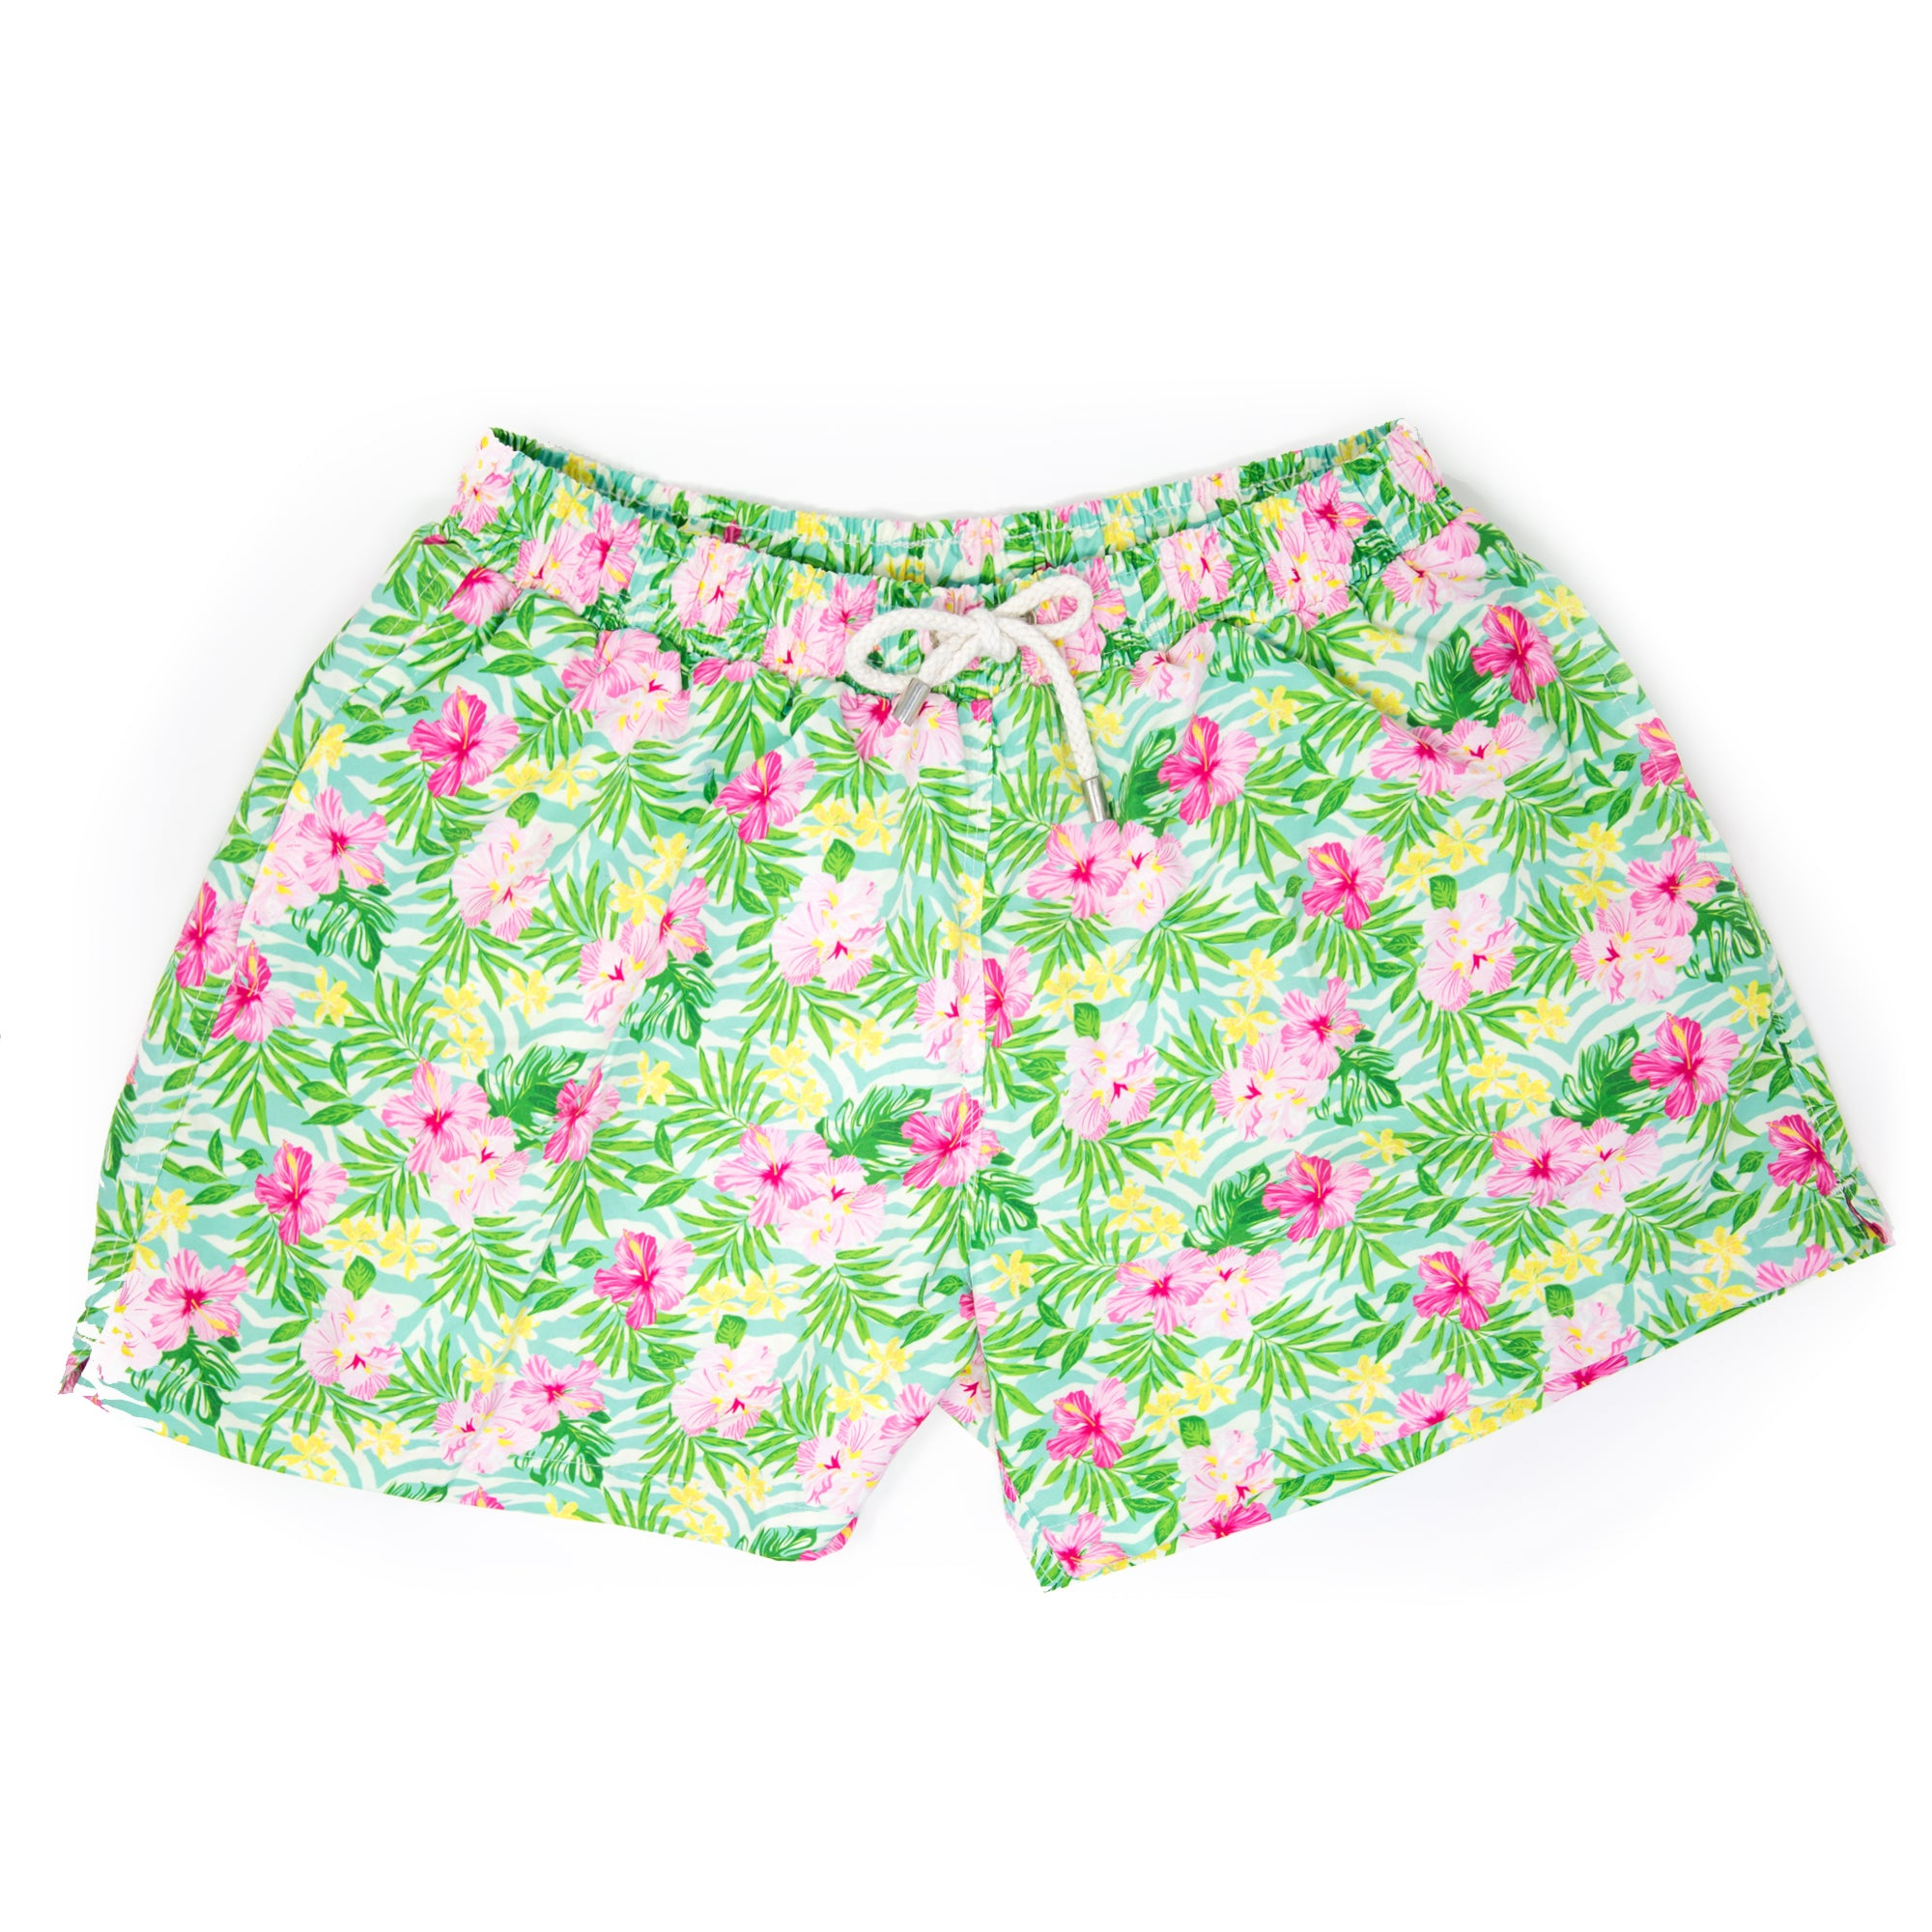 b4aeccc657b86 The Lily Poolmeisters - Men's Swim Trunks - Kennedy Brand Clothing